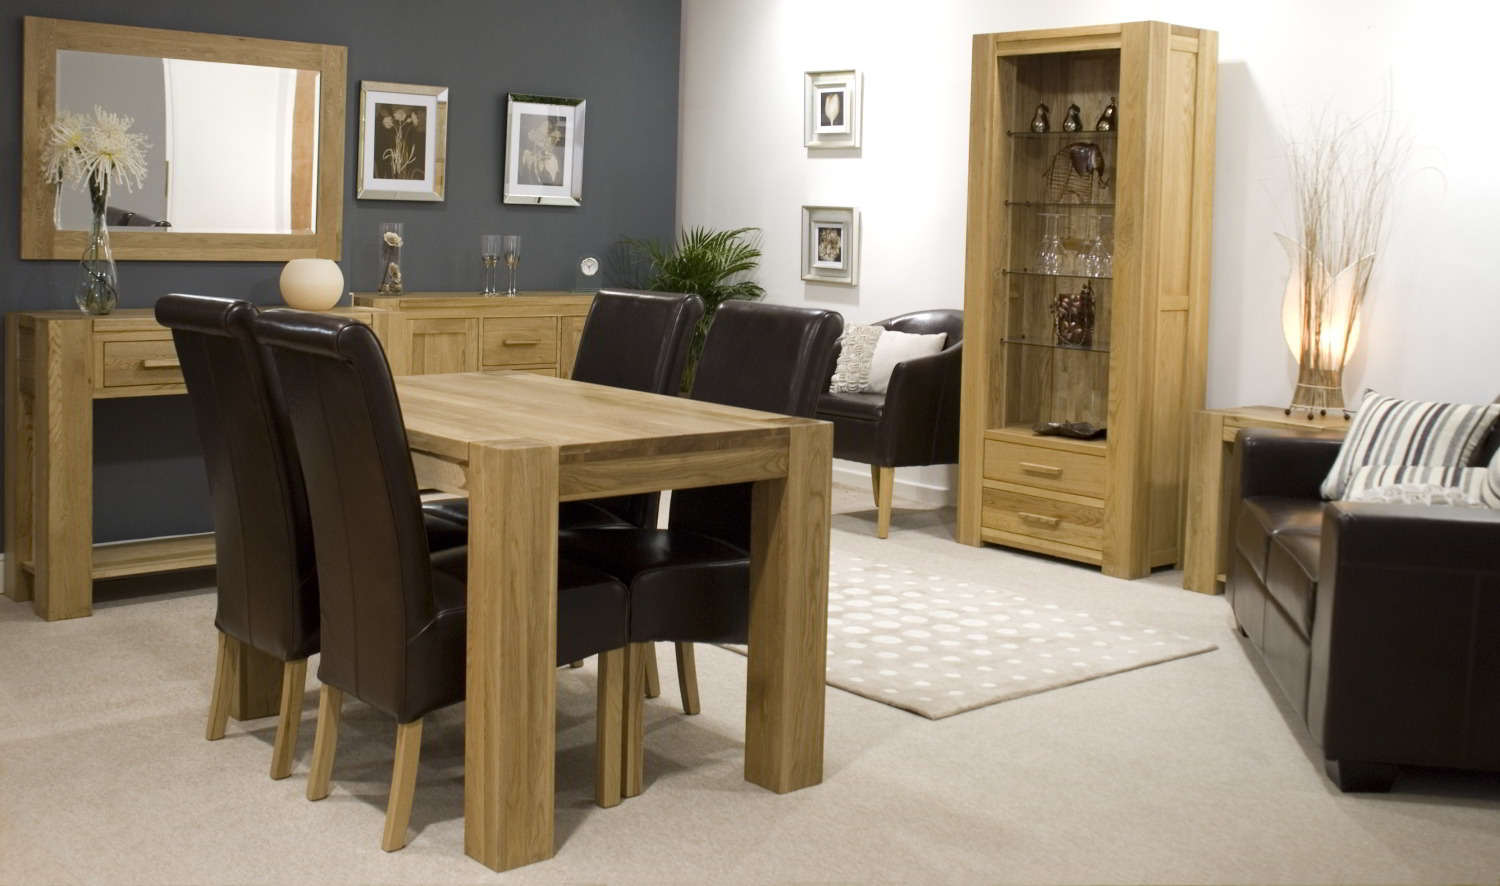 Ebay oak living room furniture living room for Ebay living room chairs